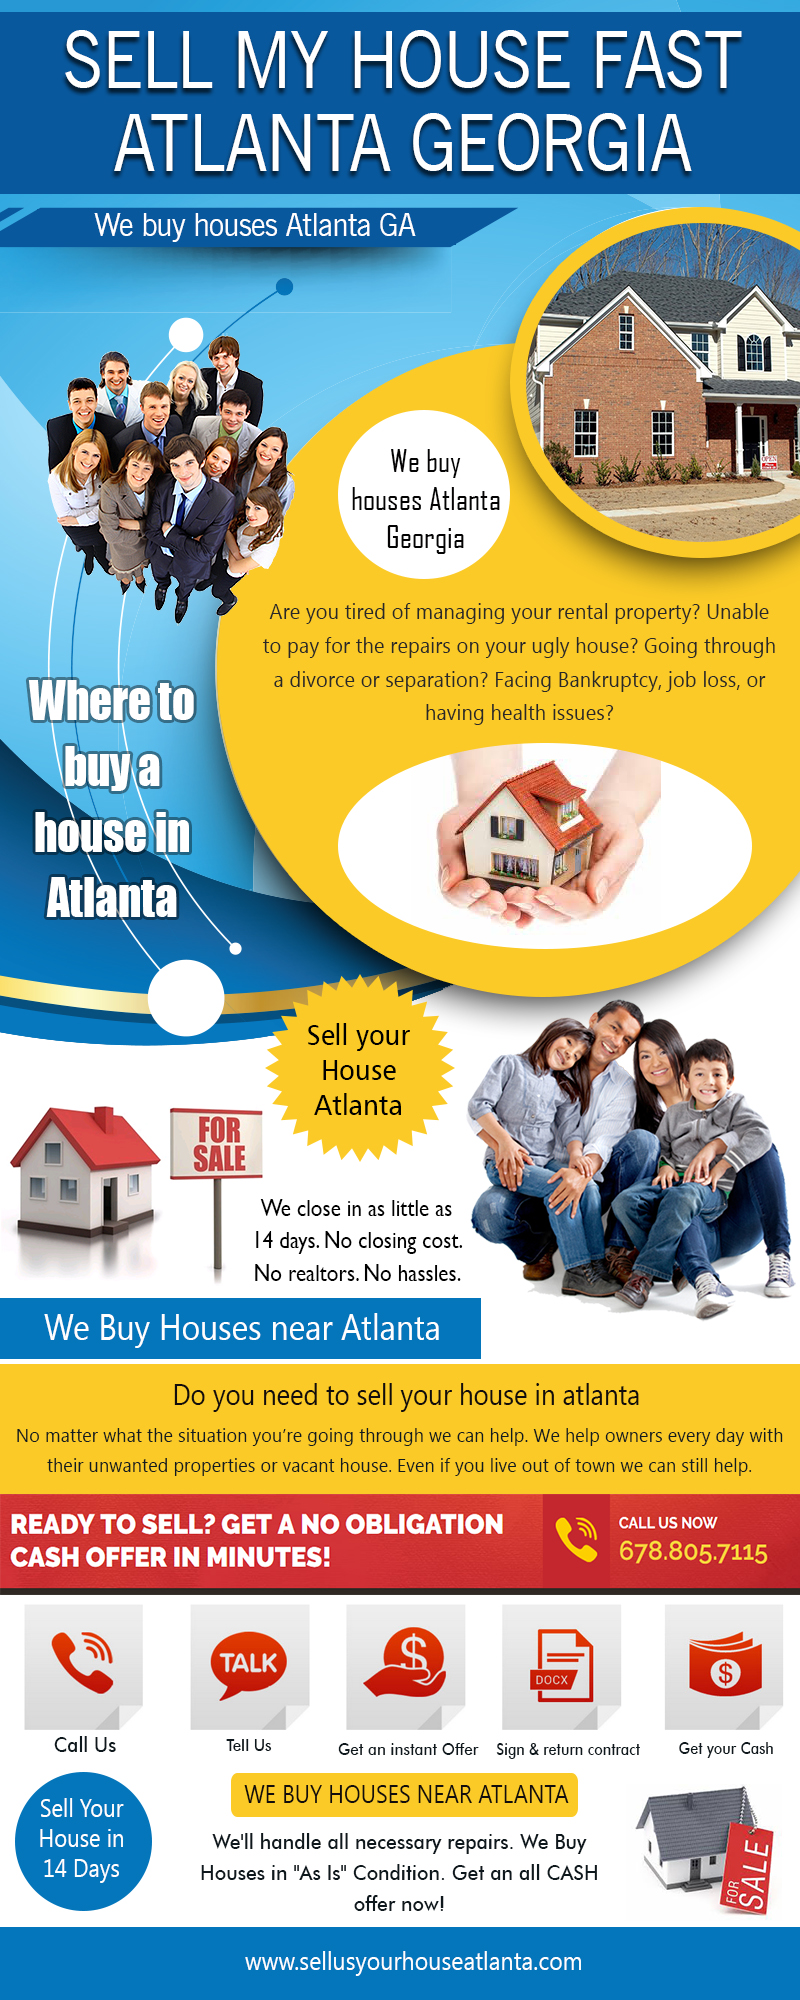 Sell my House Fast Atlanta Georgia|www.sellusyourhouseatlanta.com|6788057115